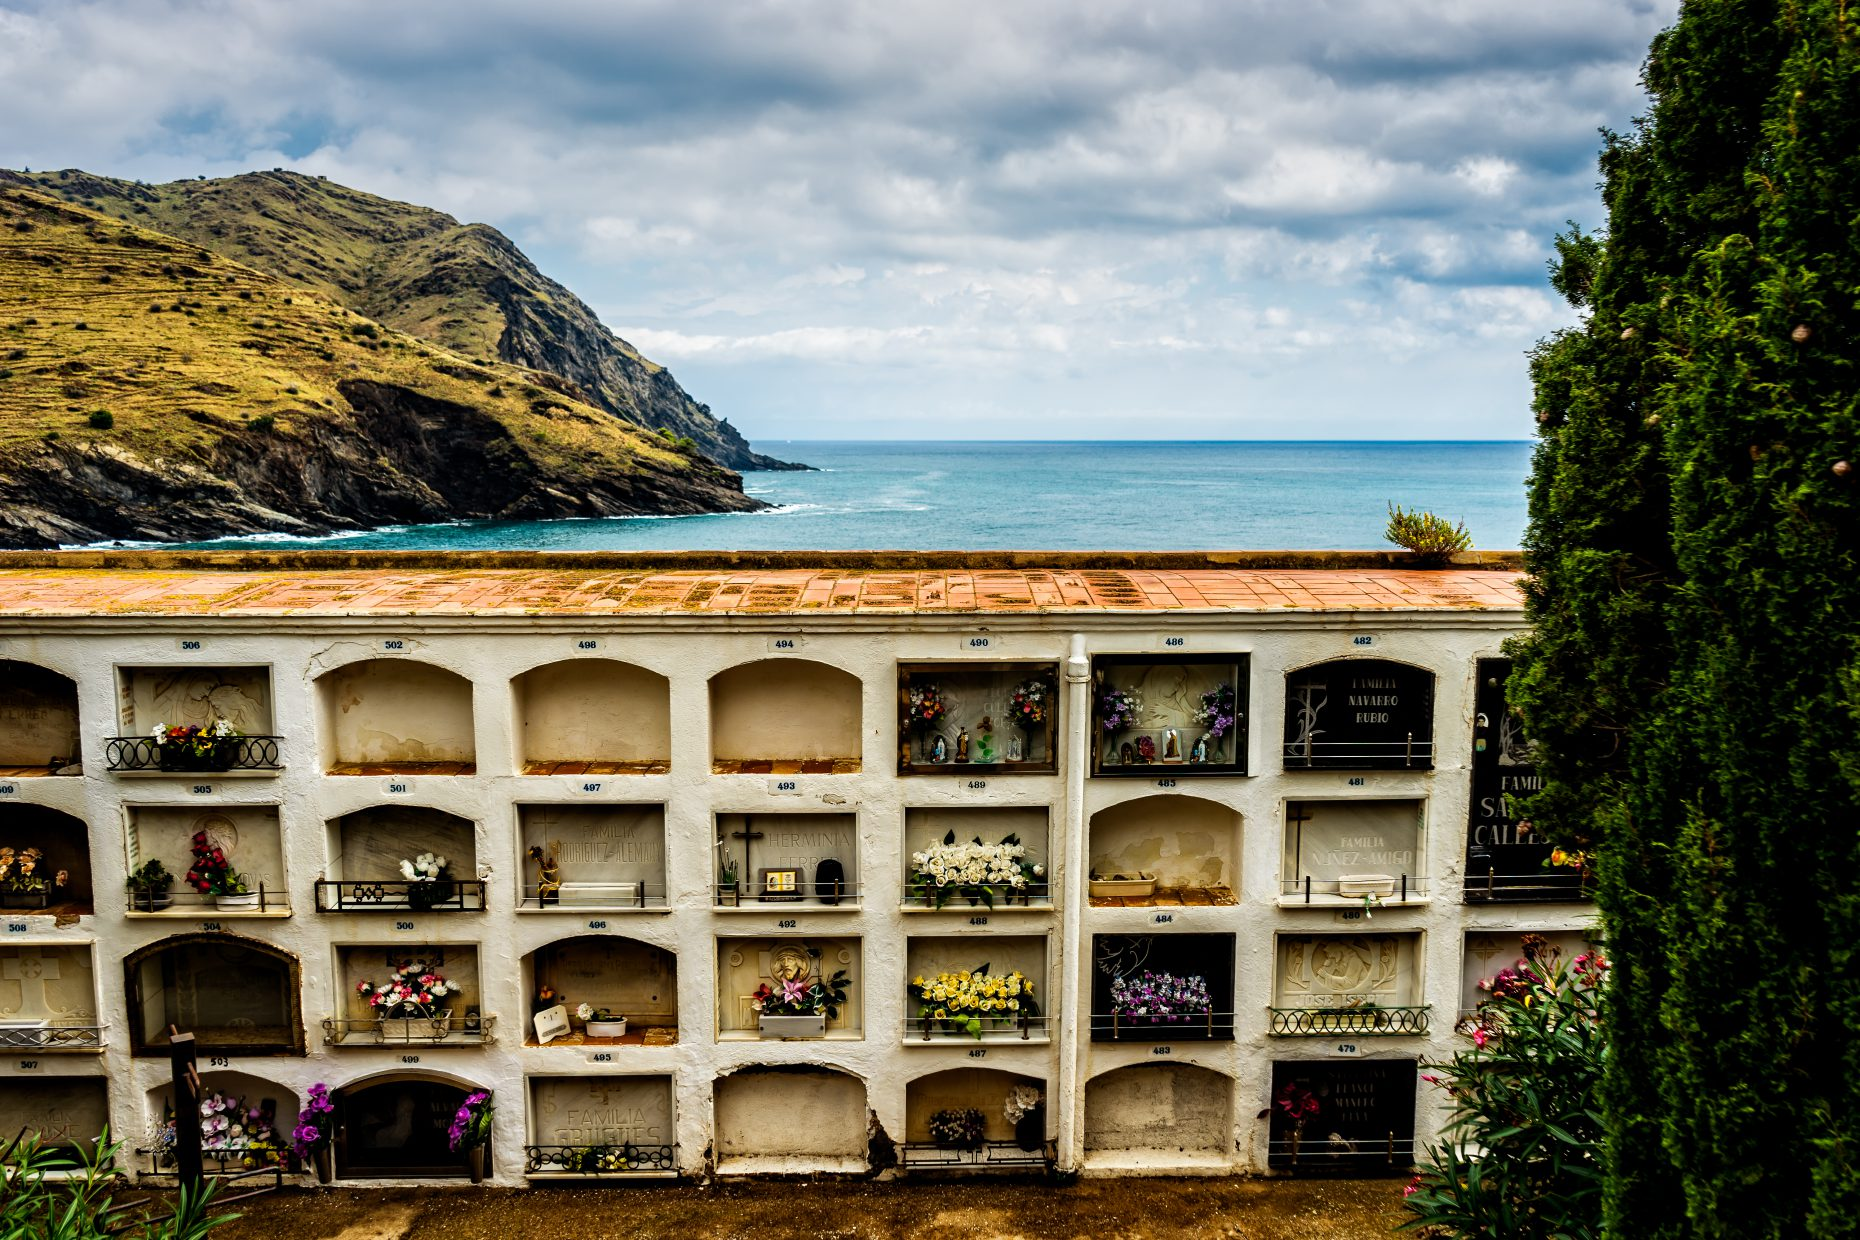 Cemetery of Portbou